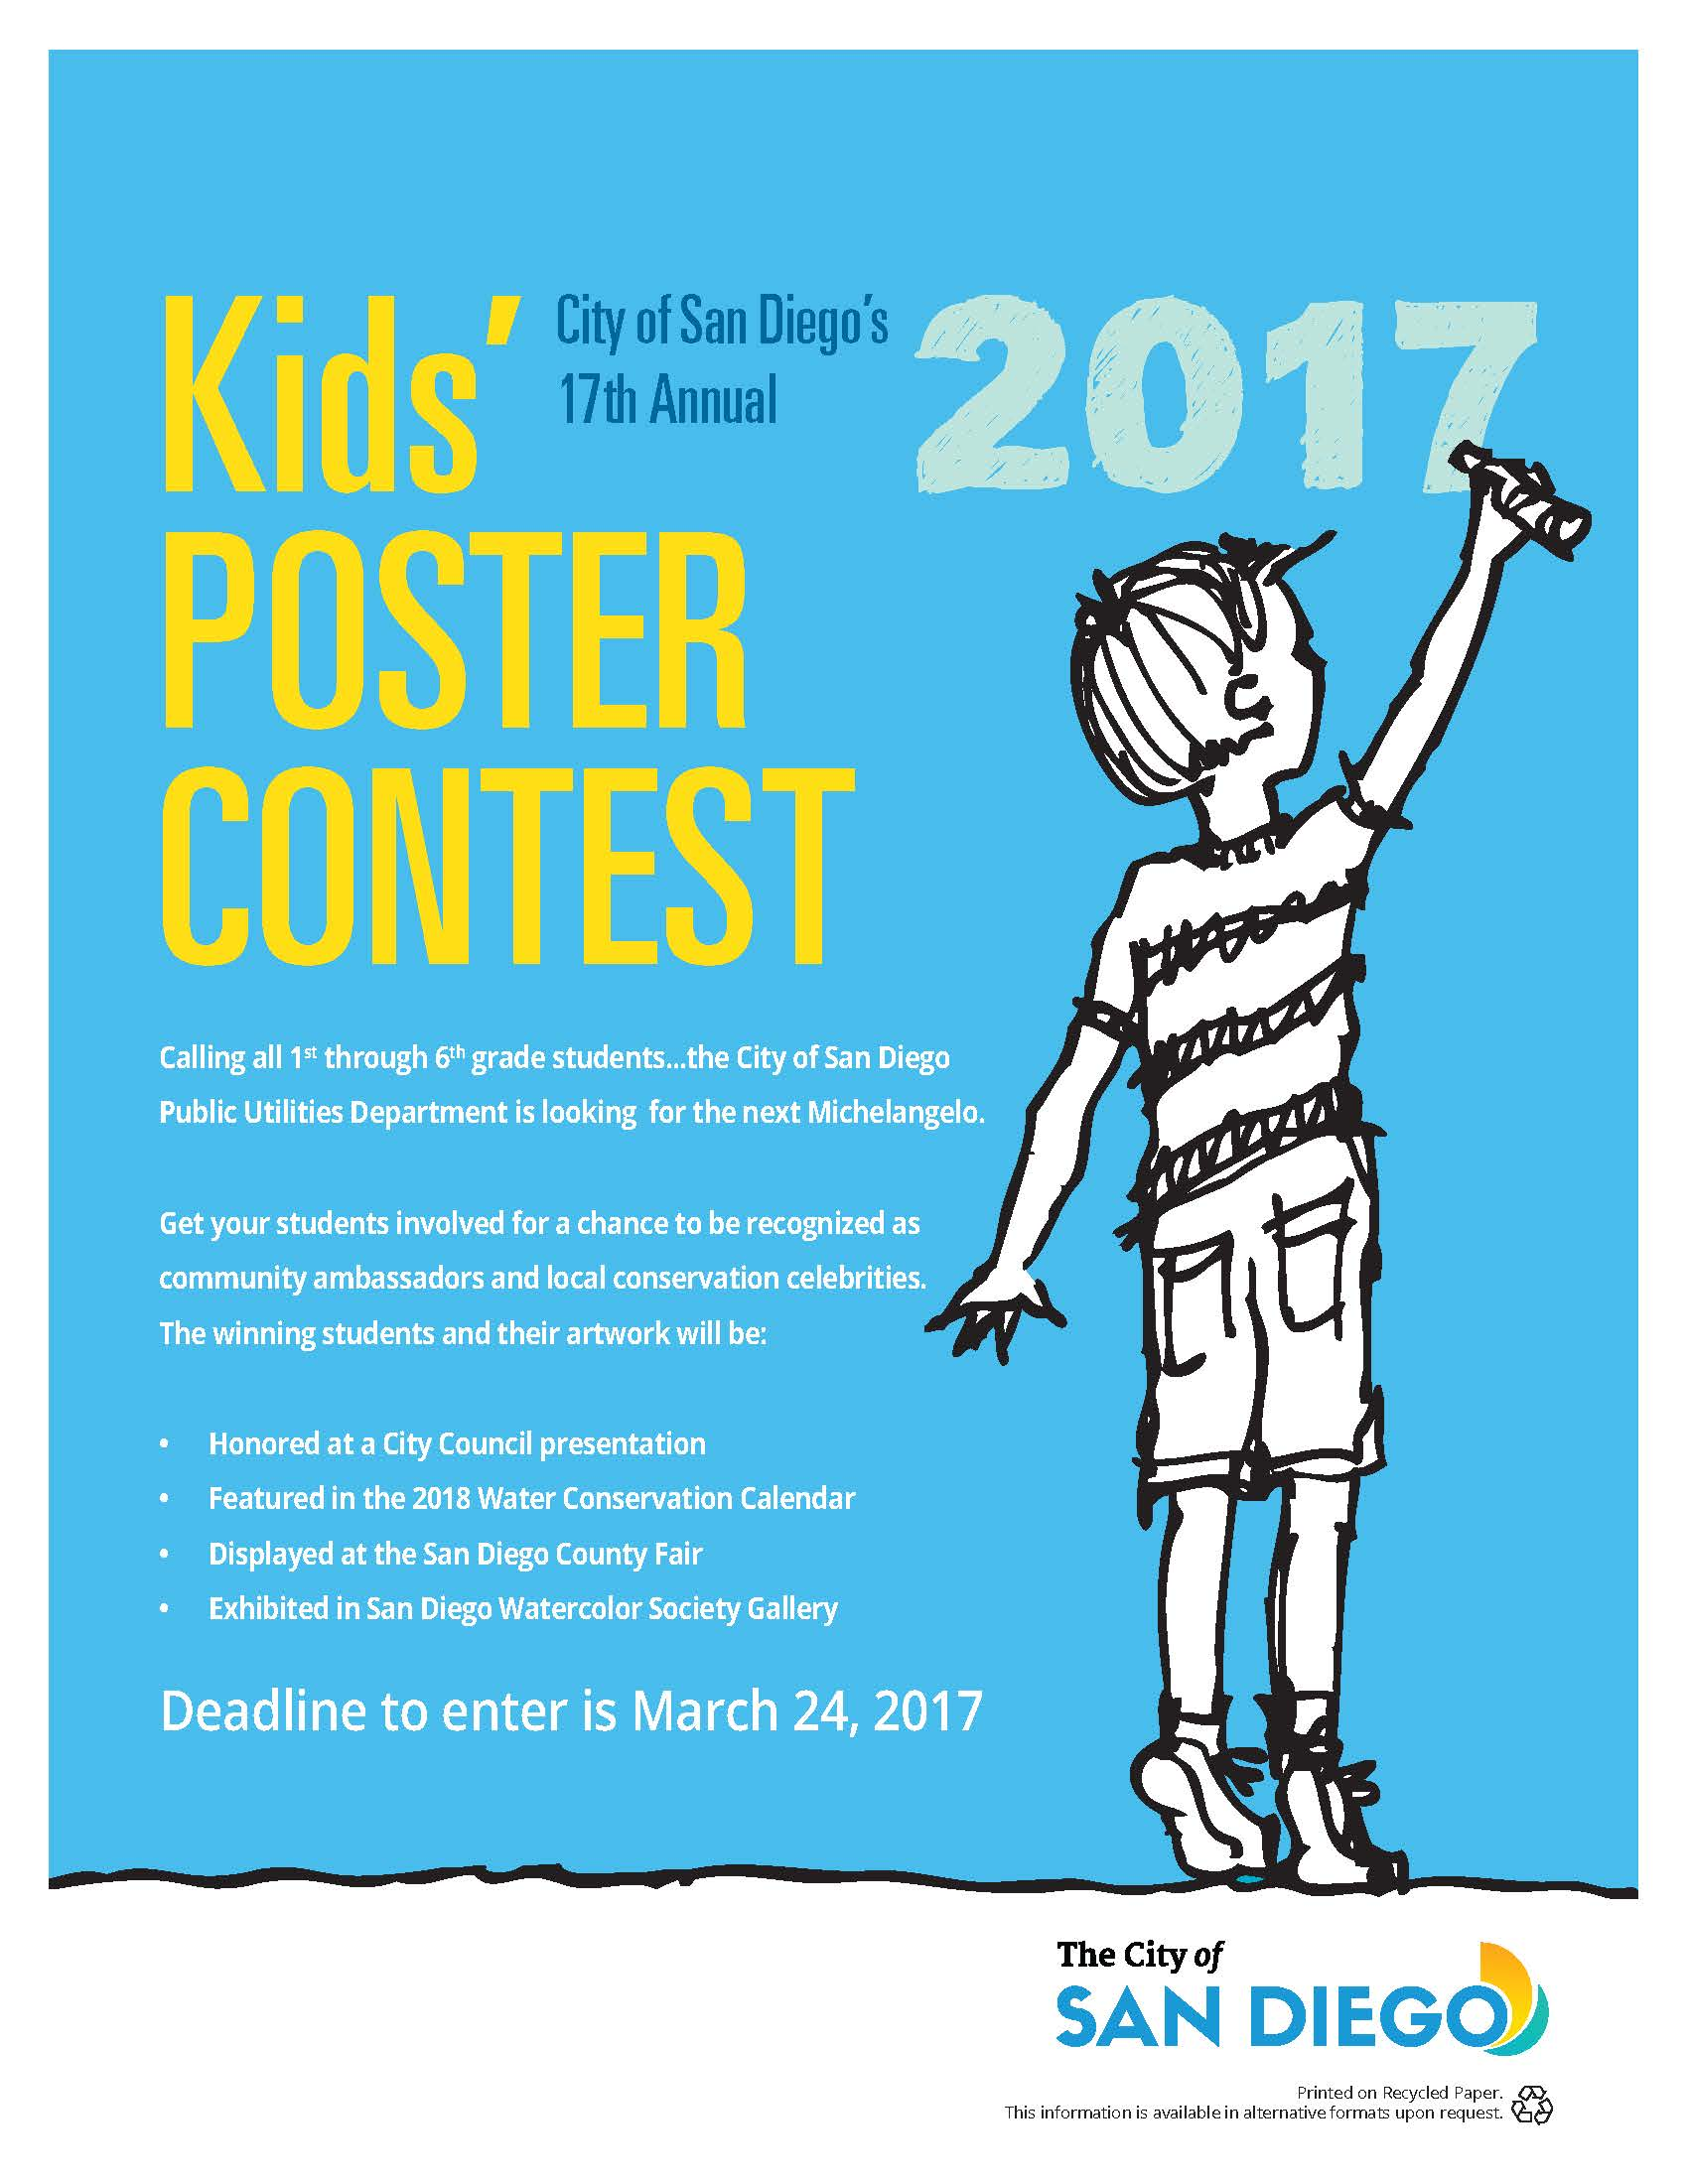 Water Conservation Poster Contest | City of San Diego Official Website